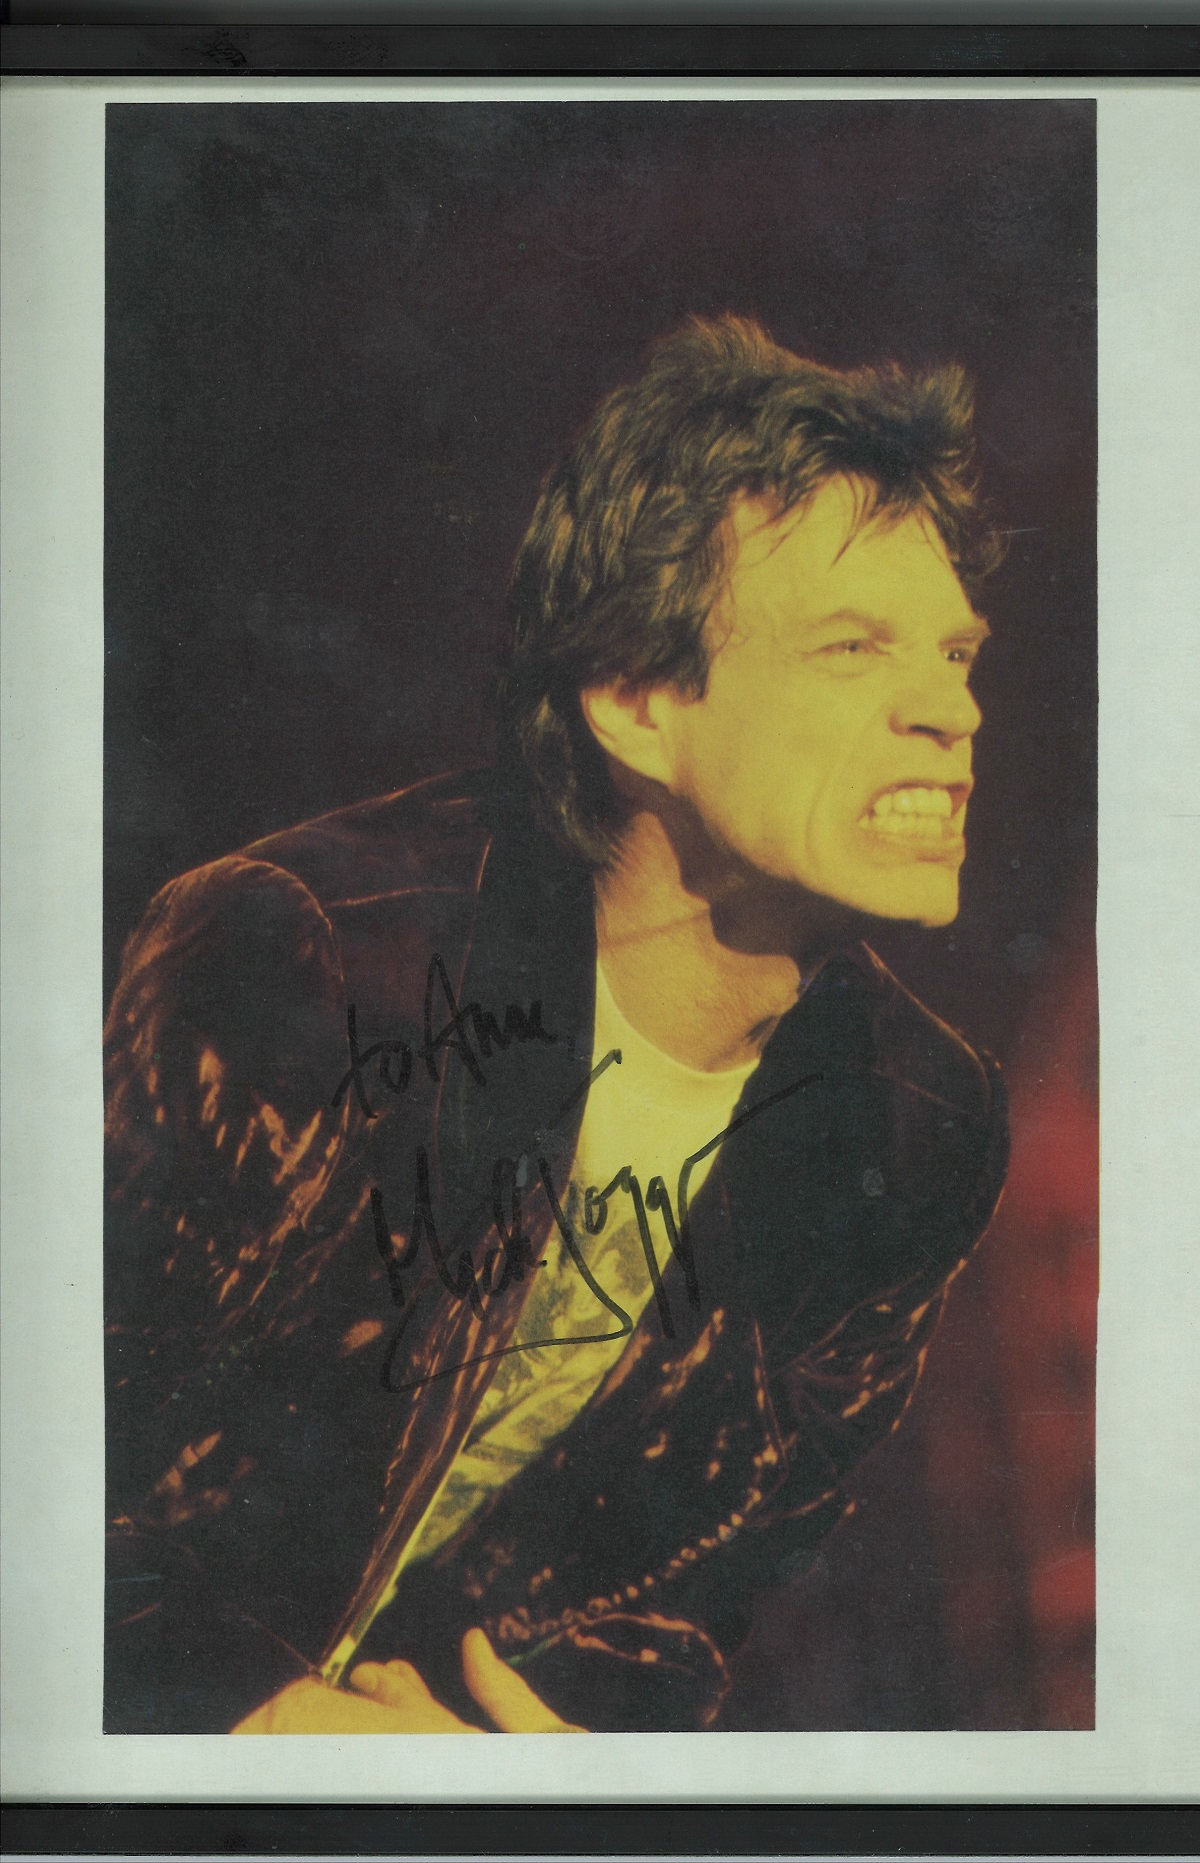 Mick Jagger signed colour photo. Framed to approximate size 12x10. Good condition. All autographs